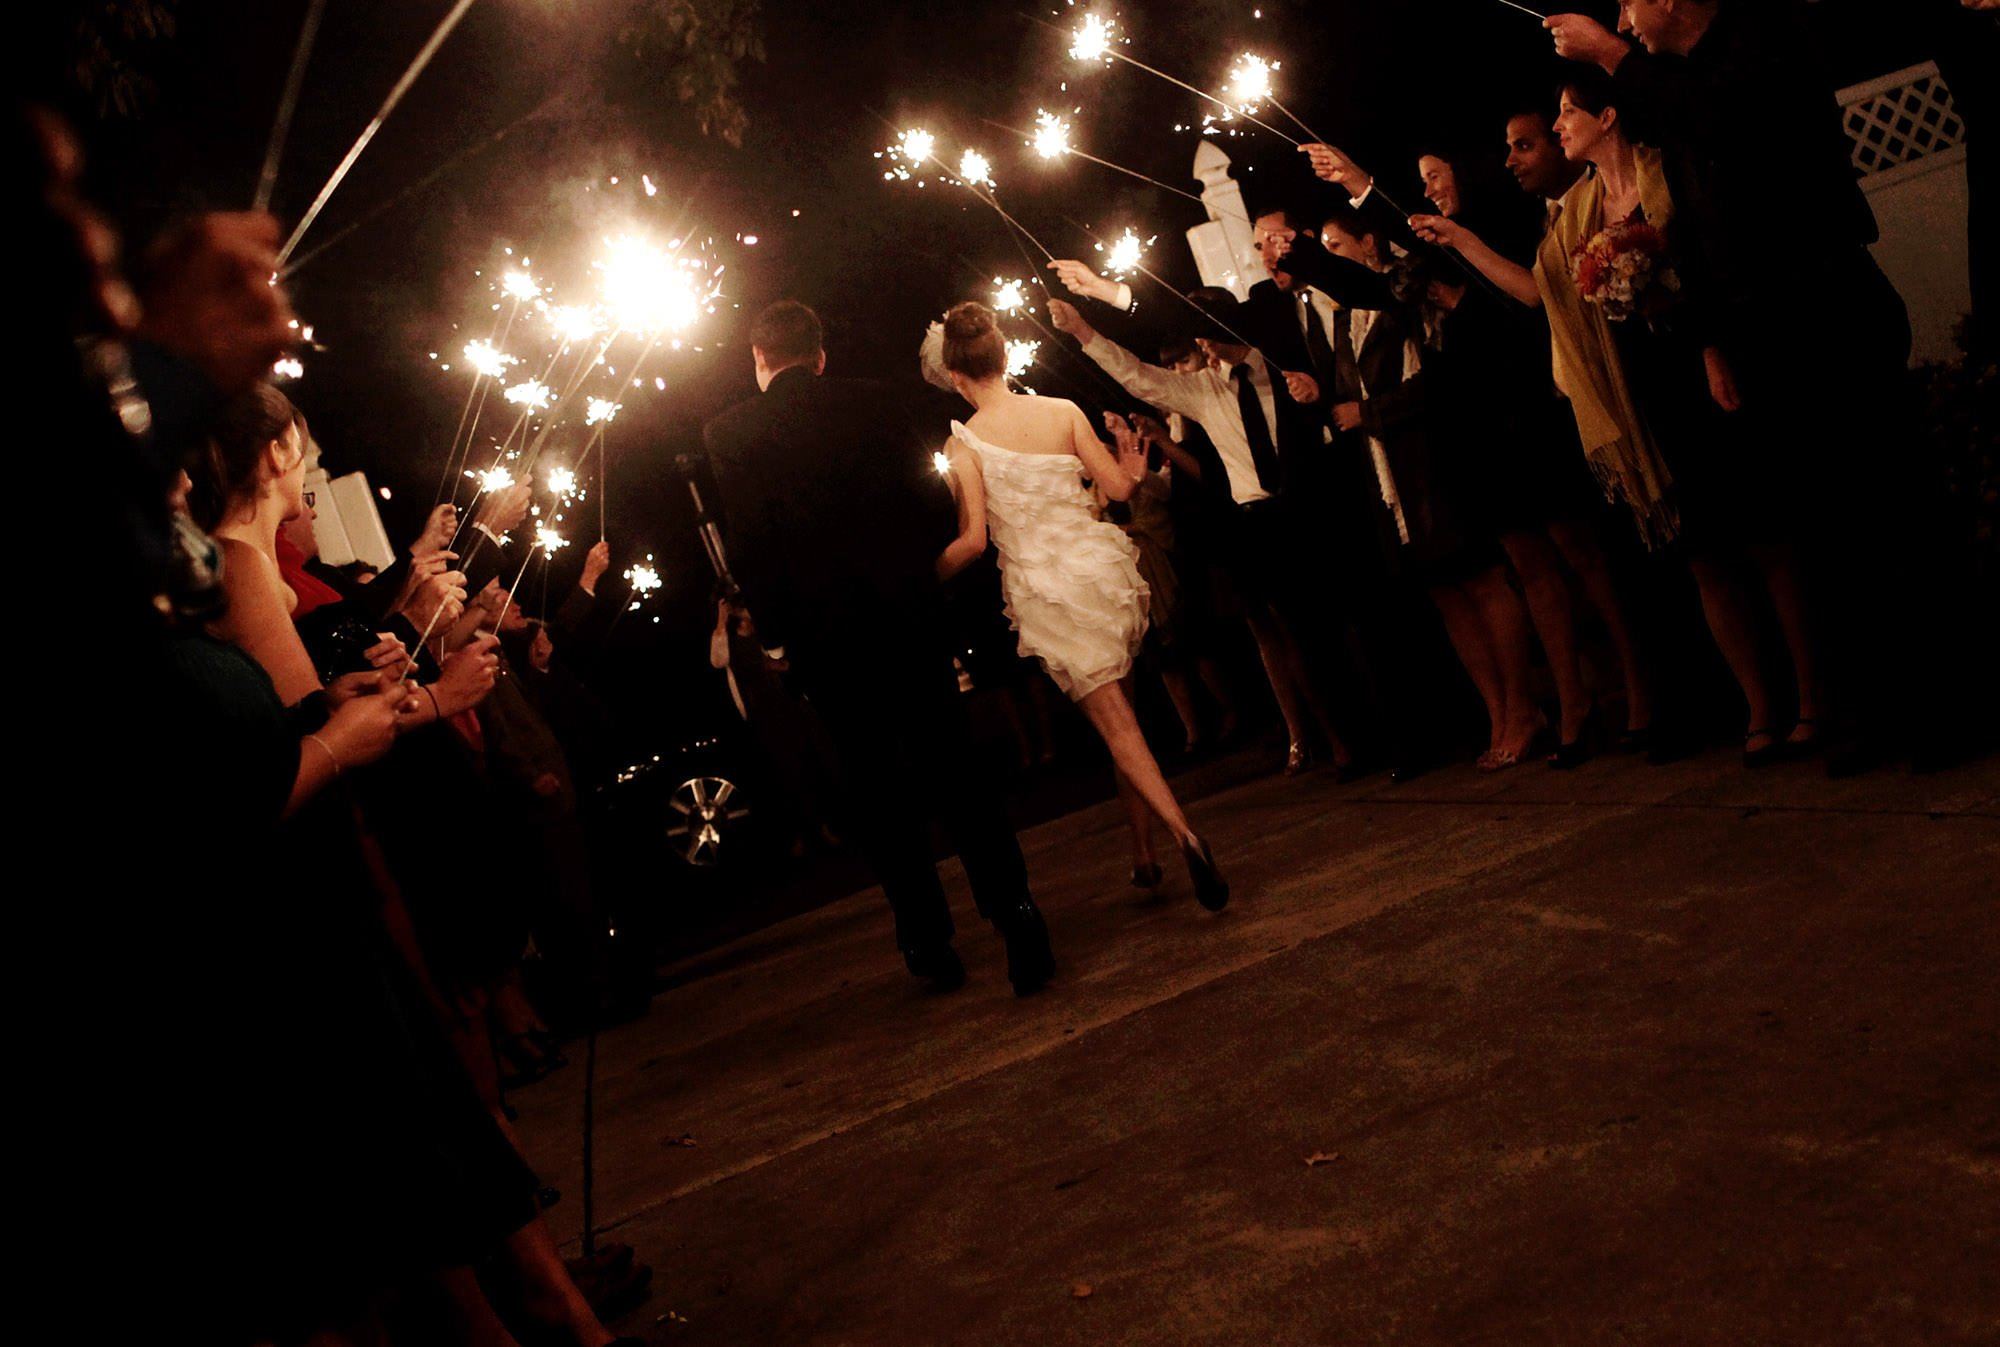 The bride and groom leave the venue during their sparkler sendoff at Celebrations at the Bay.